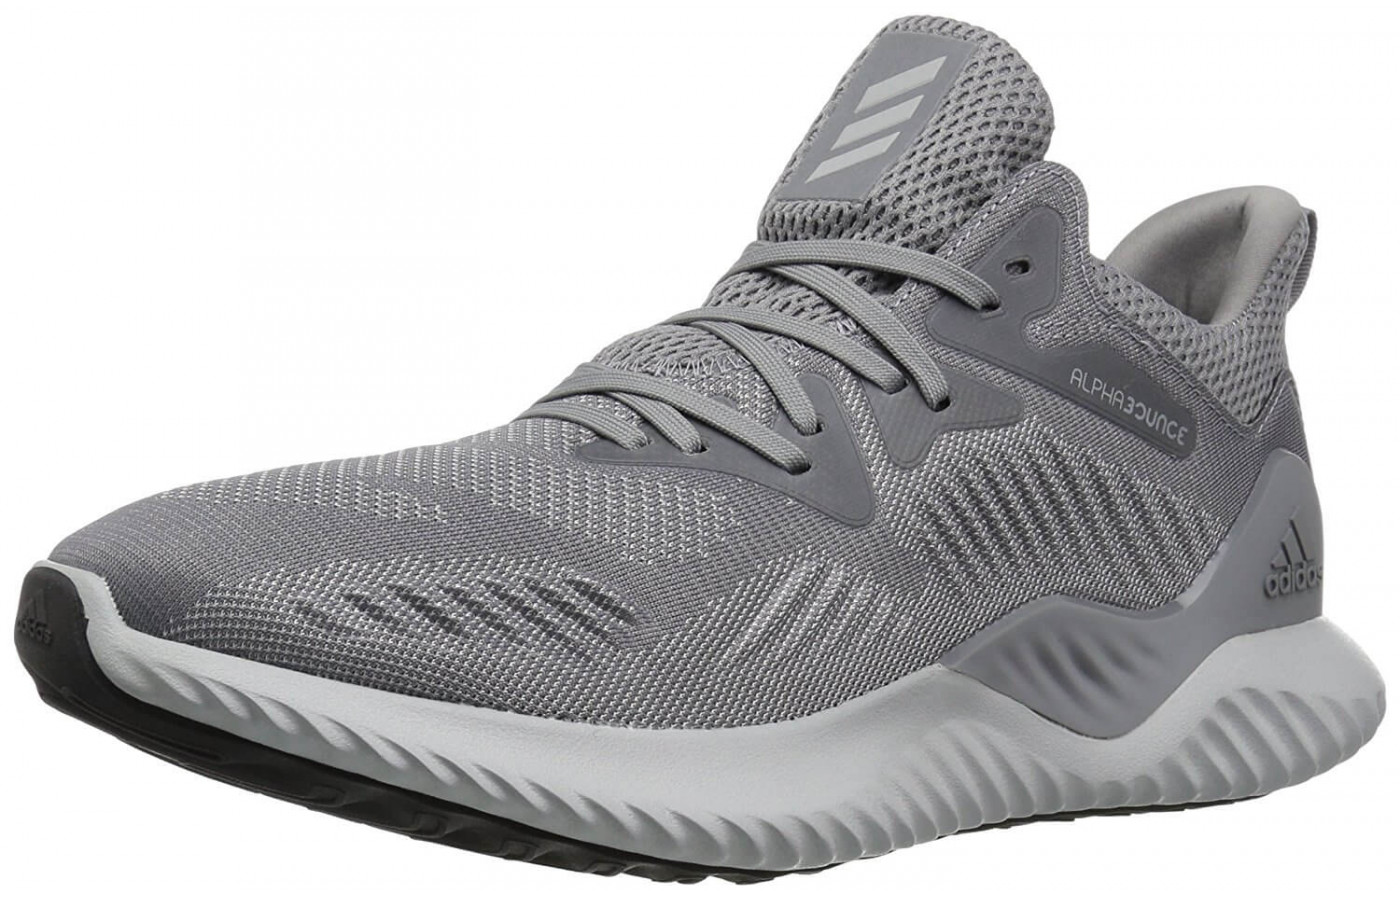 62620d10b9a04 Adidas Alphabounce Beyond - To Buy or Not in May 2019